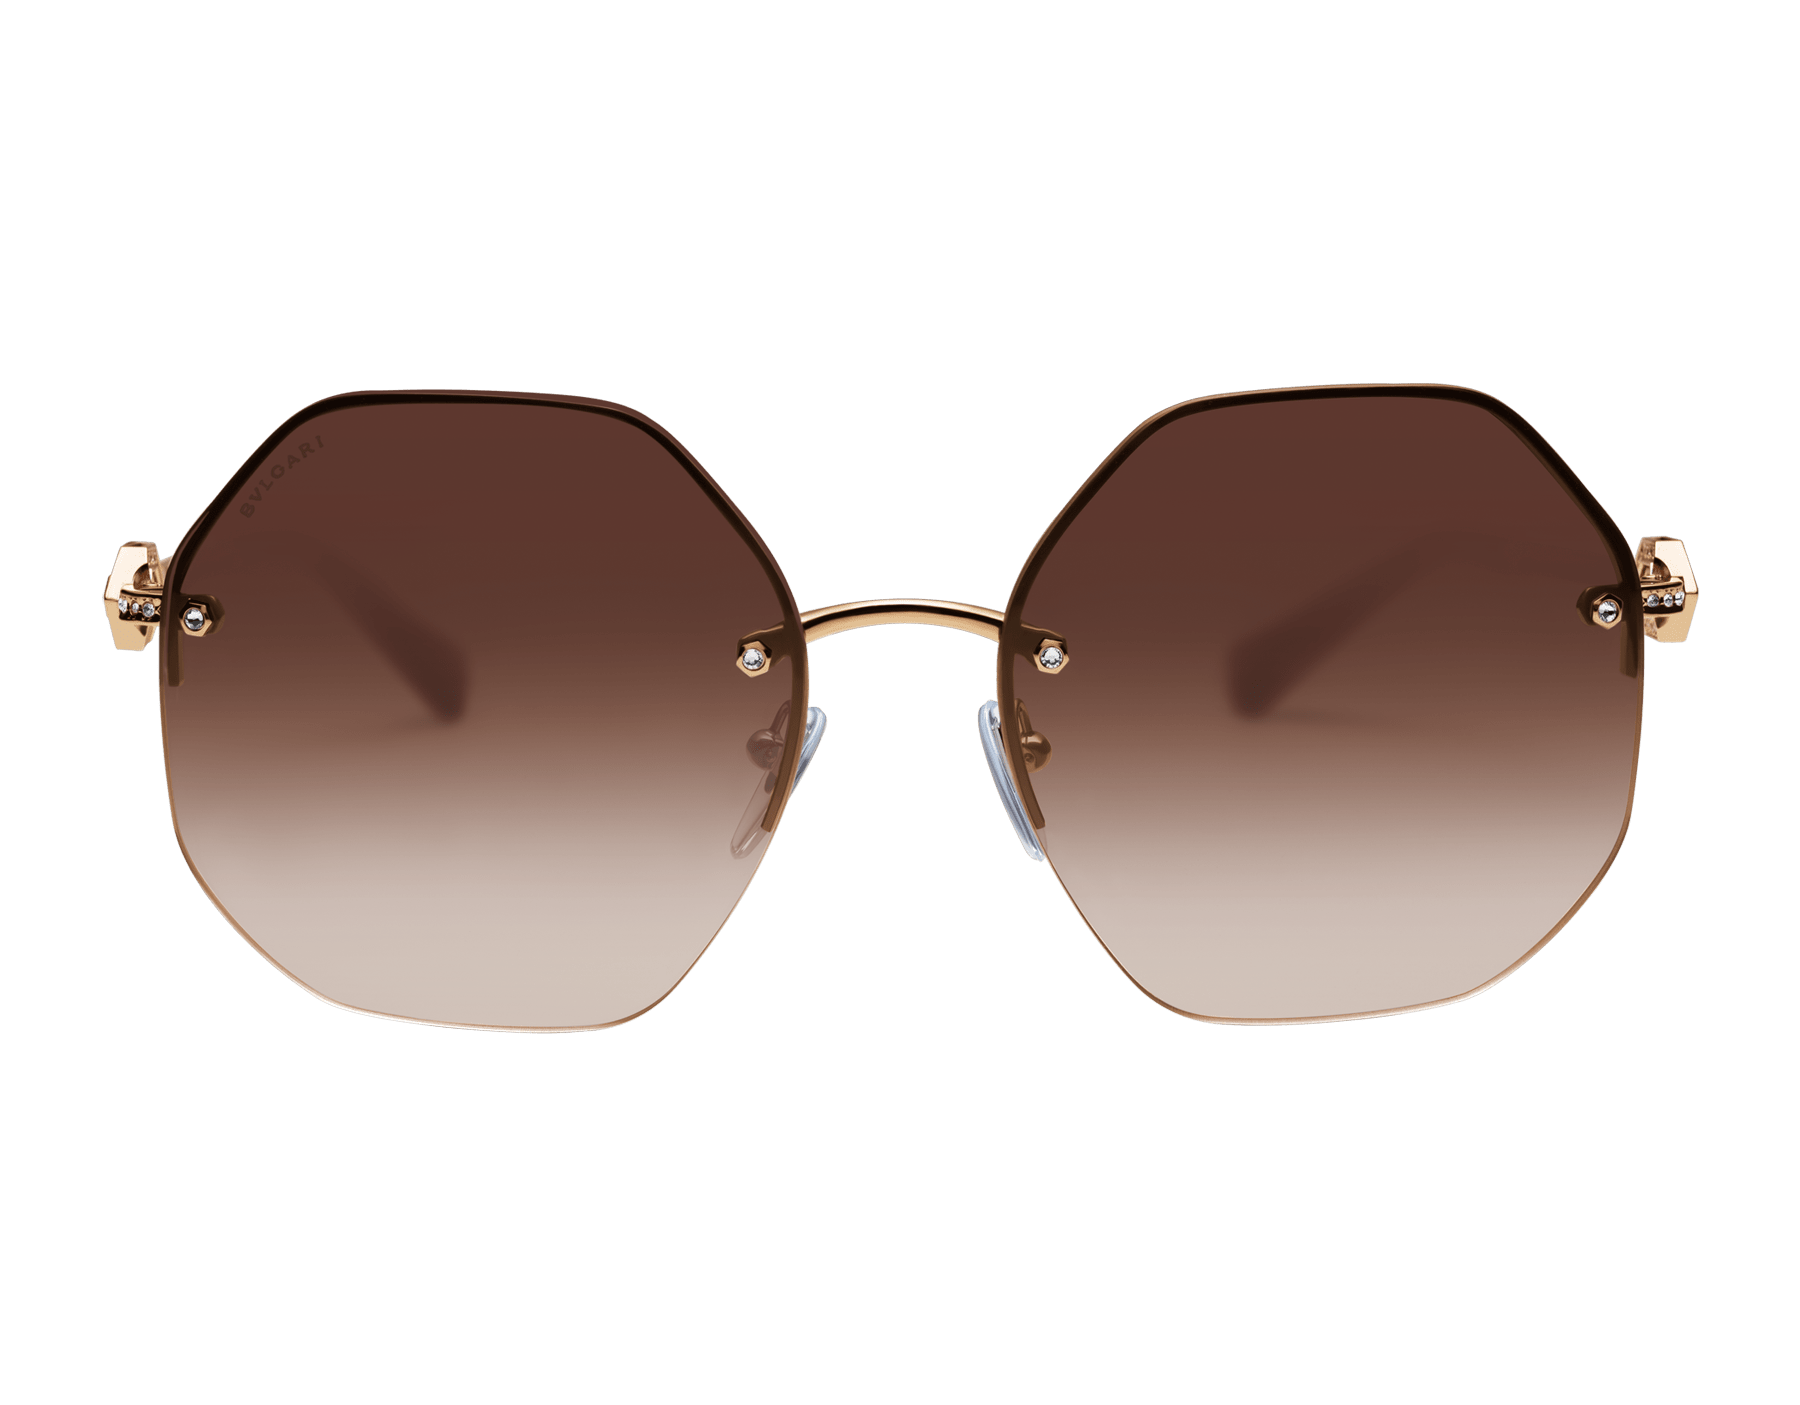 Bvlgari Serpenti oversized metal sunglasses with Serpenti openwork metal décor with crystals. 903854 image 2